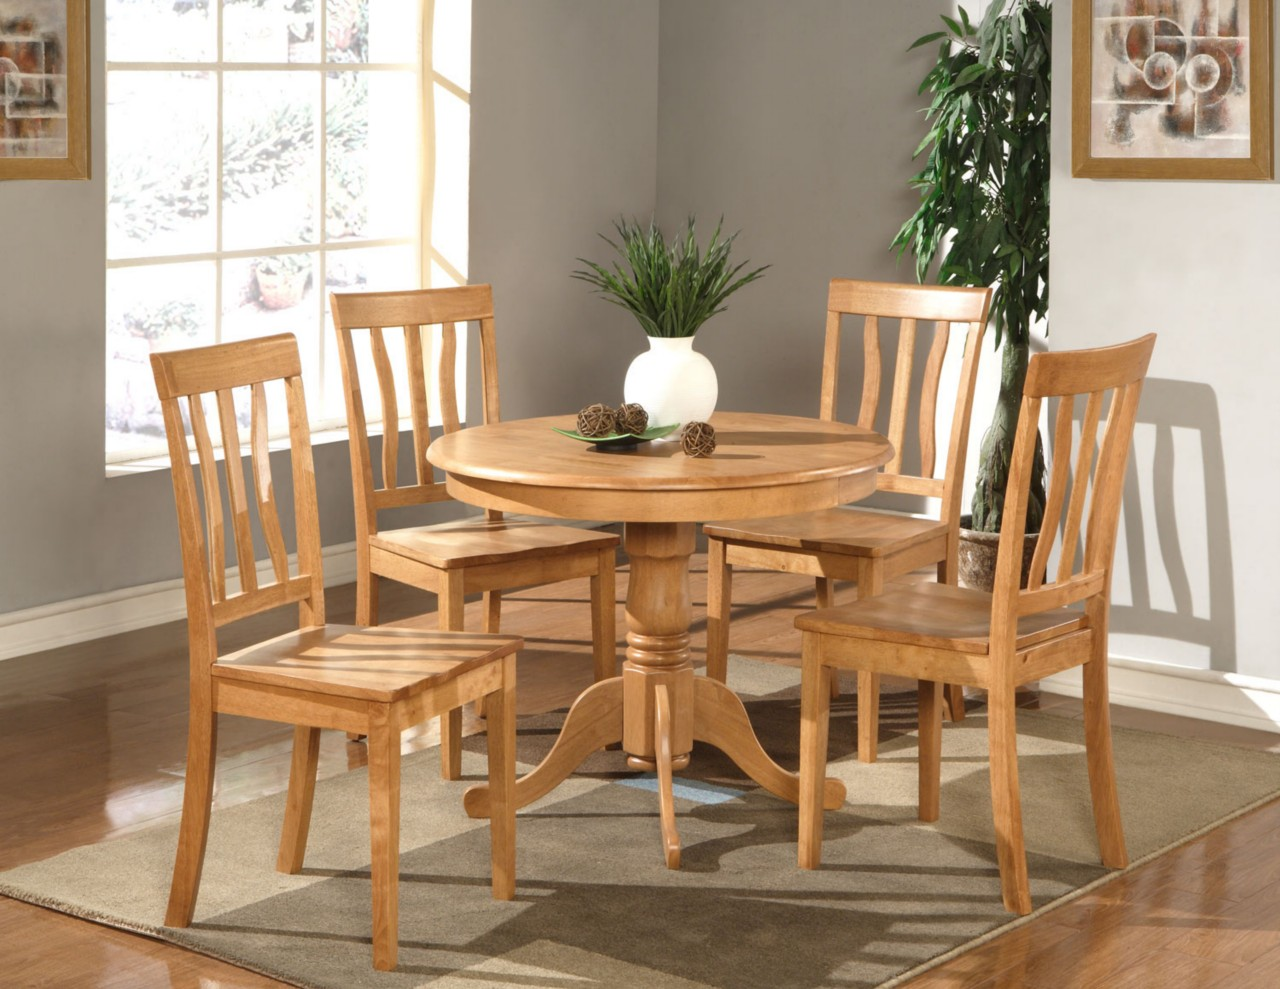 5 PC DINETTE KITCHEN ROUND TABLE With 4 WOOD SEAT CHAIRS IN OAK FINISH 36 EBay